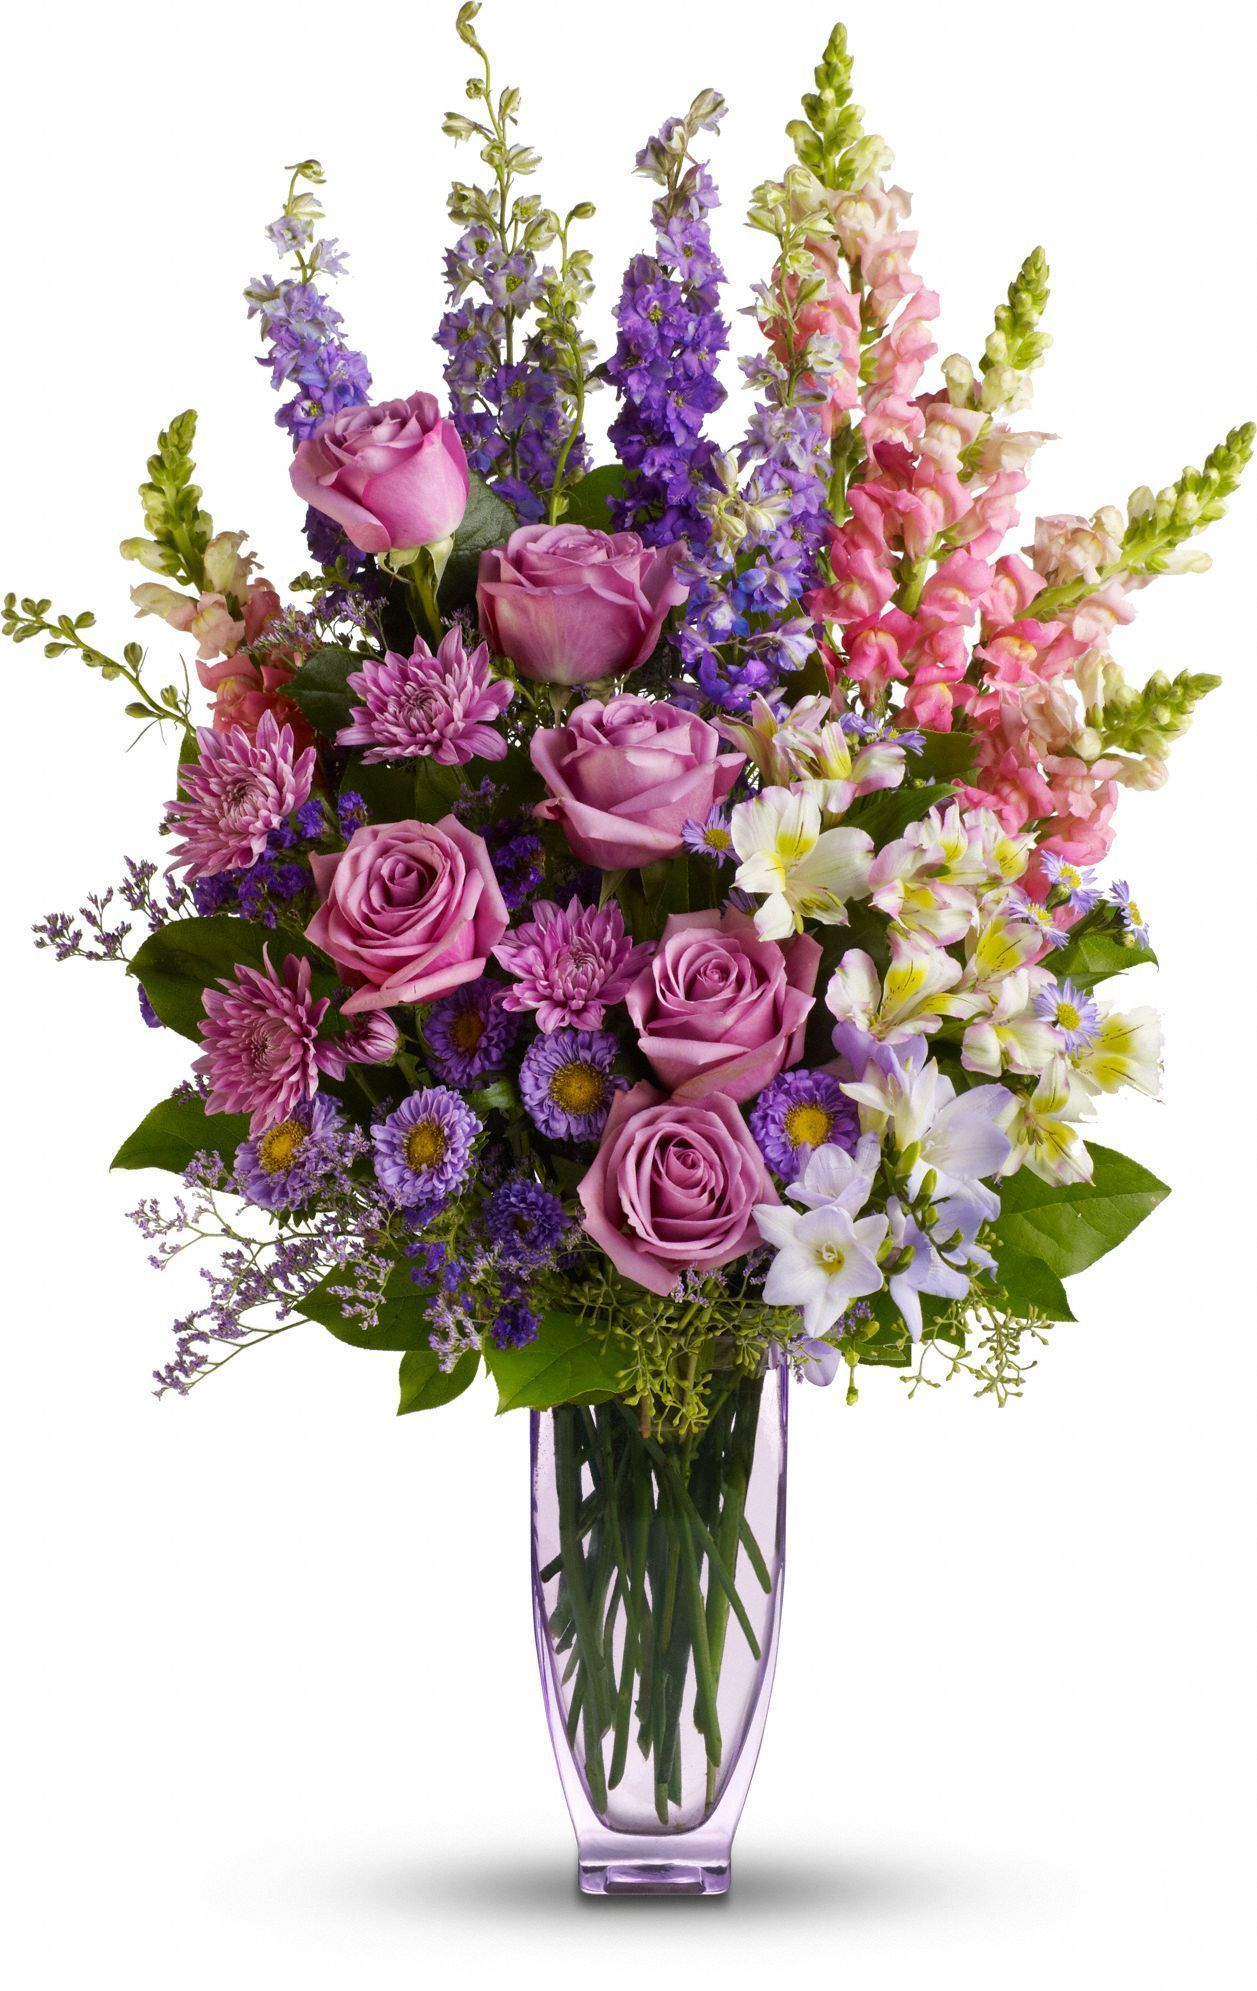 Learn all about different types of flowers, from roses and